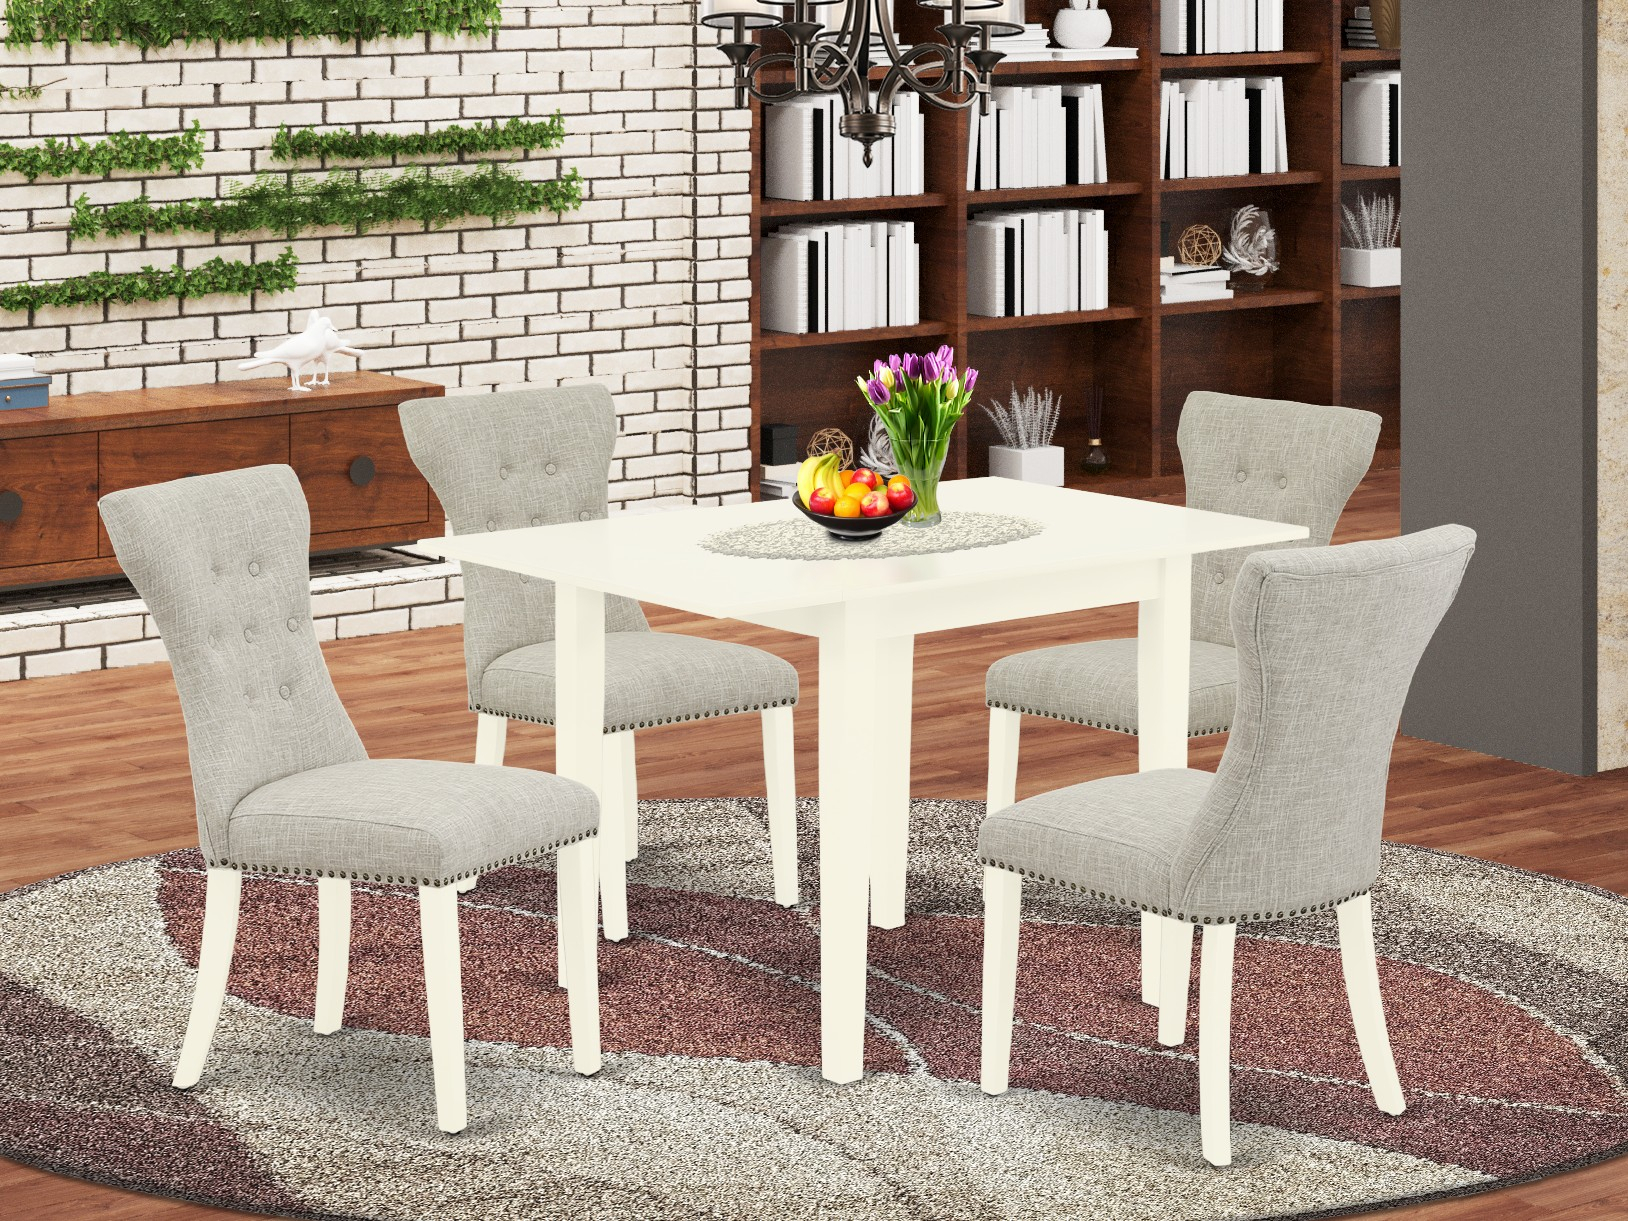 East West Furniture Ndga5 Lwh 35 5 Piece Kitchen Table Set Inside Newest Benji 35'' Dining Tables (View 14 of 15)